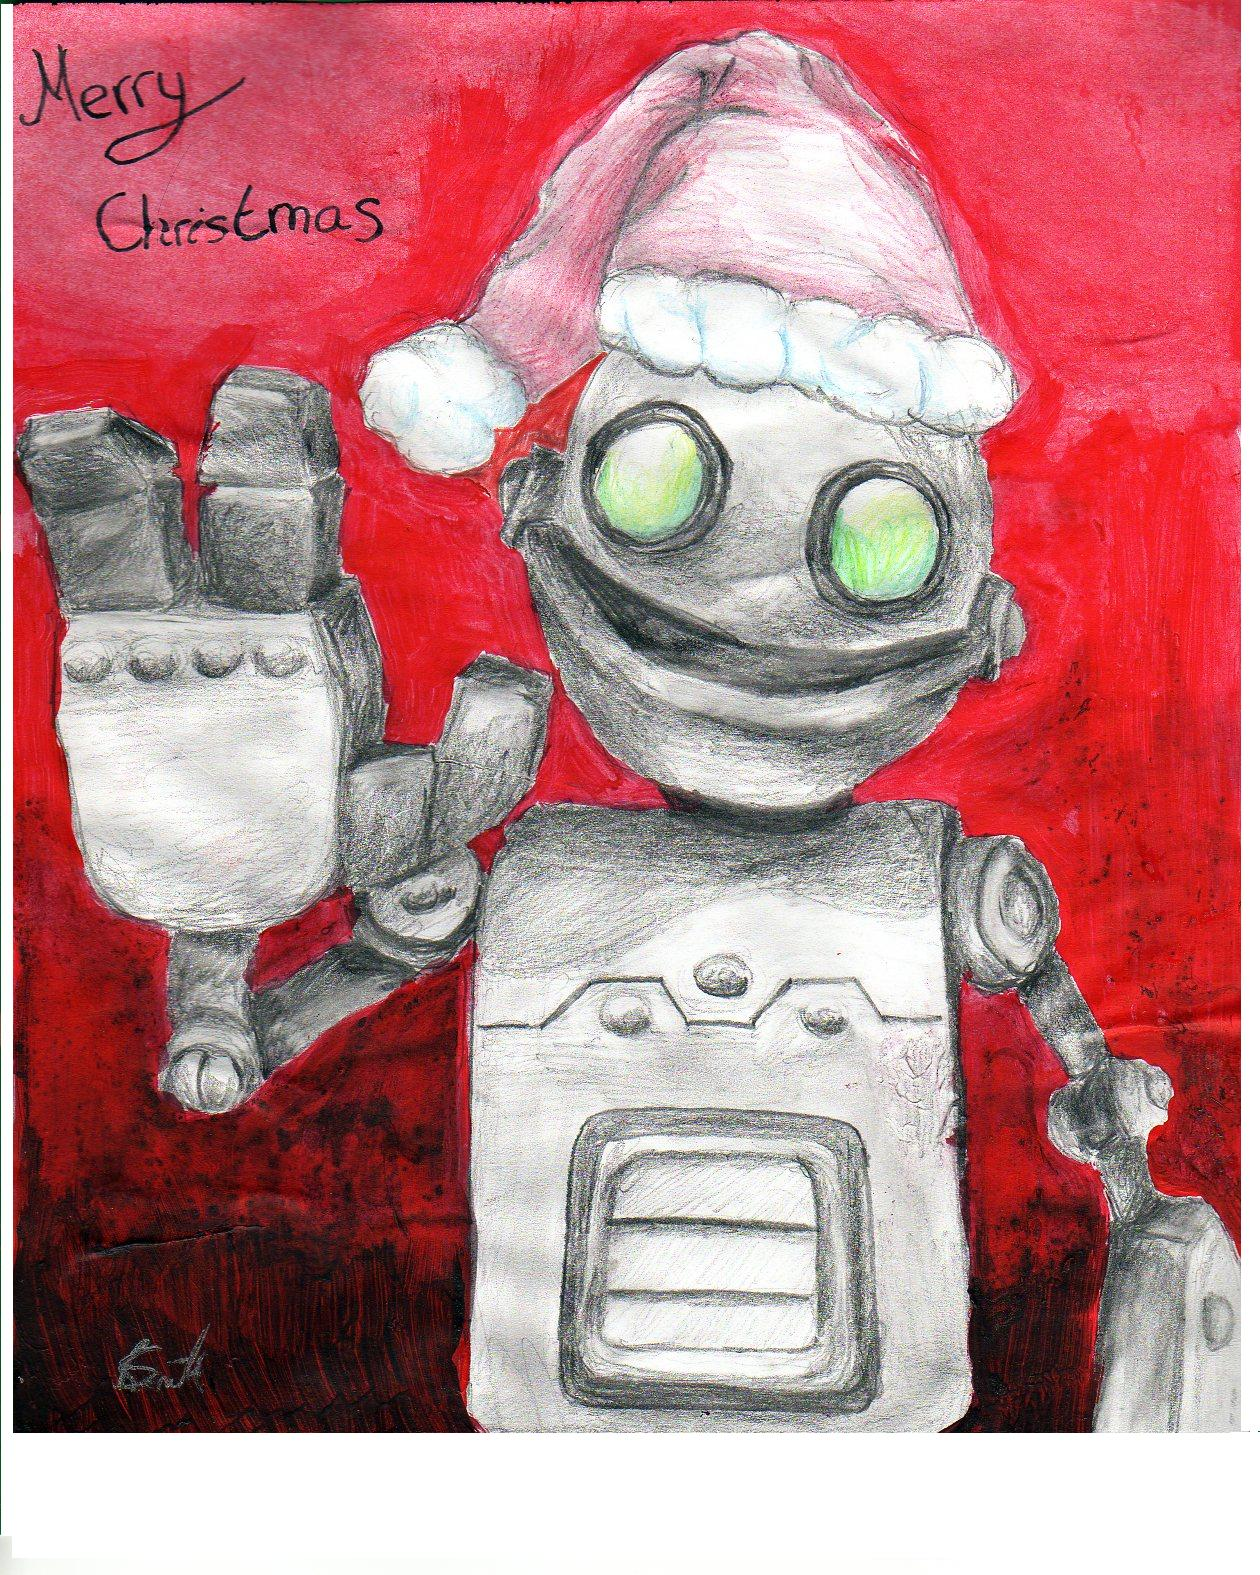 Merry Christmas from Clank by scarlettie90